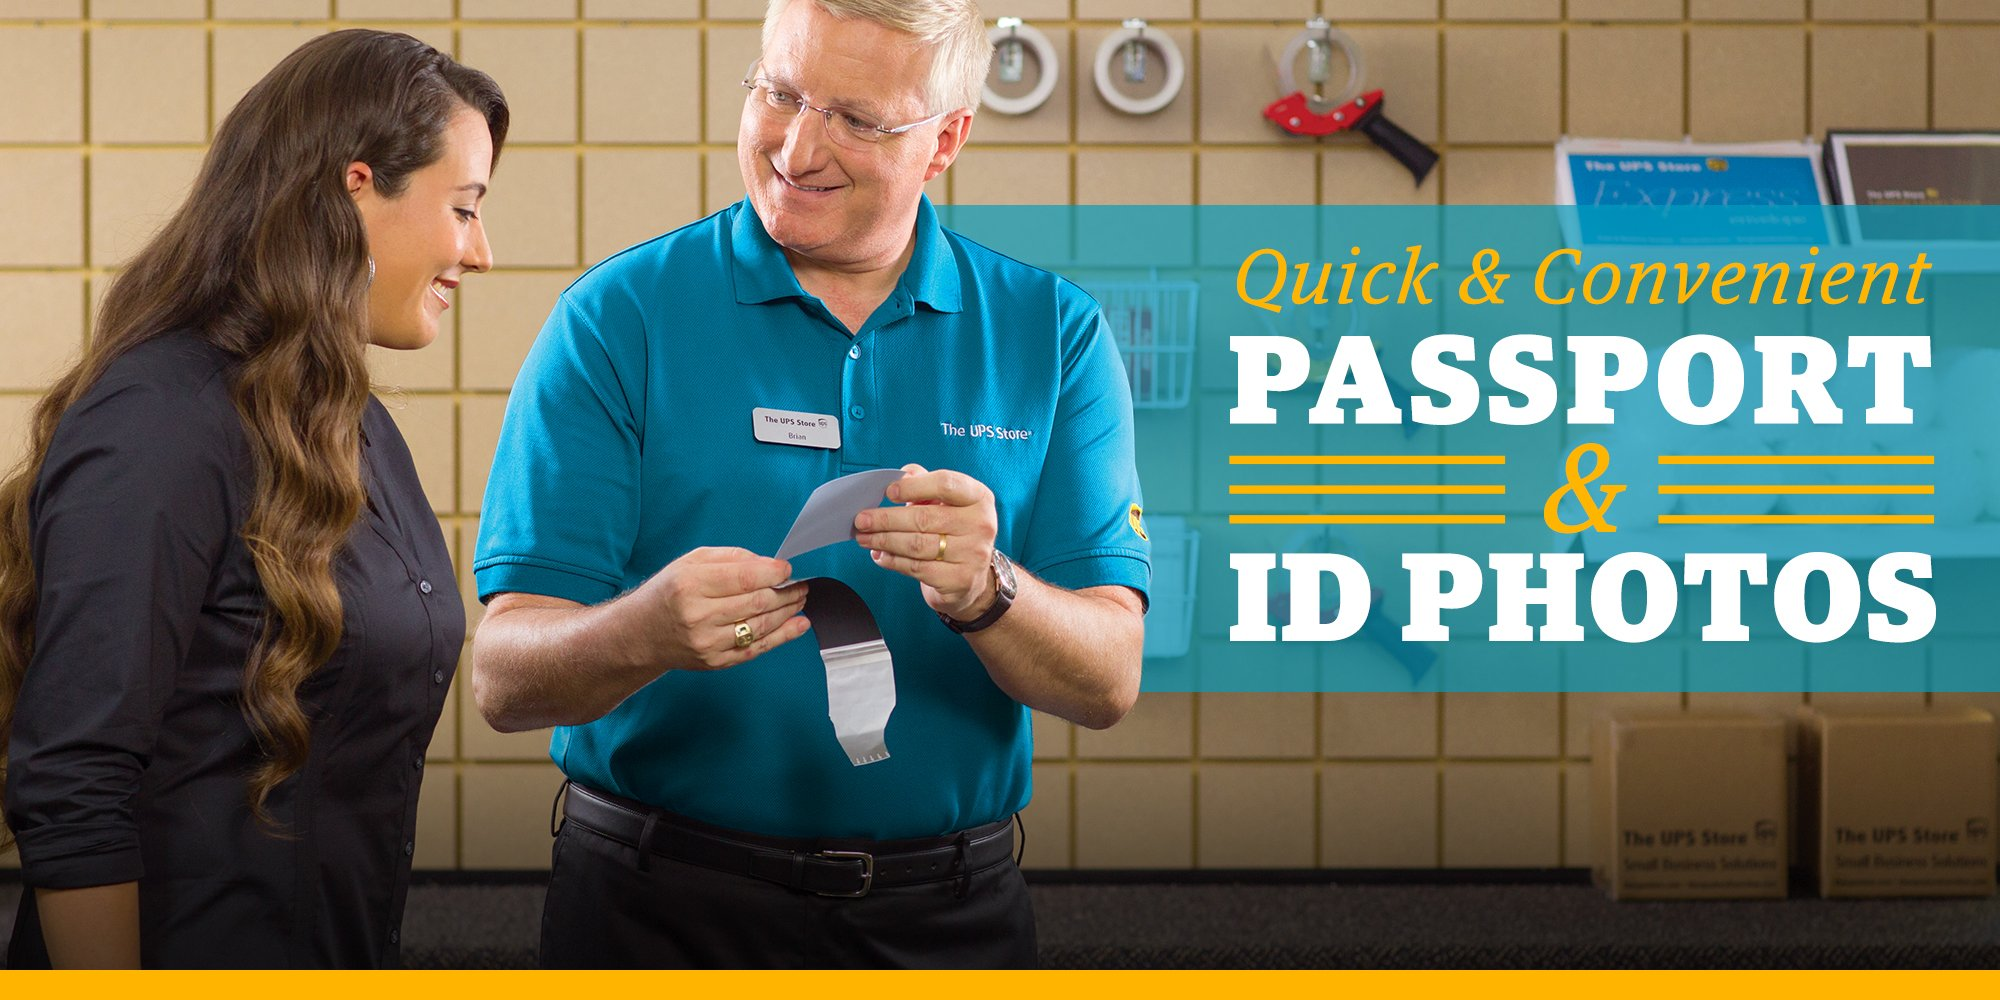 """The UPS Store on Twitter: """"Planning on traveling this season? (Can we  come?) Make sure your passport is up-to-date with our easy passport  services! #TravelTuesday… https://t.co/CLpiVfETHr"""""""